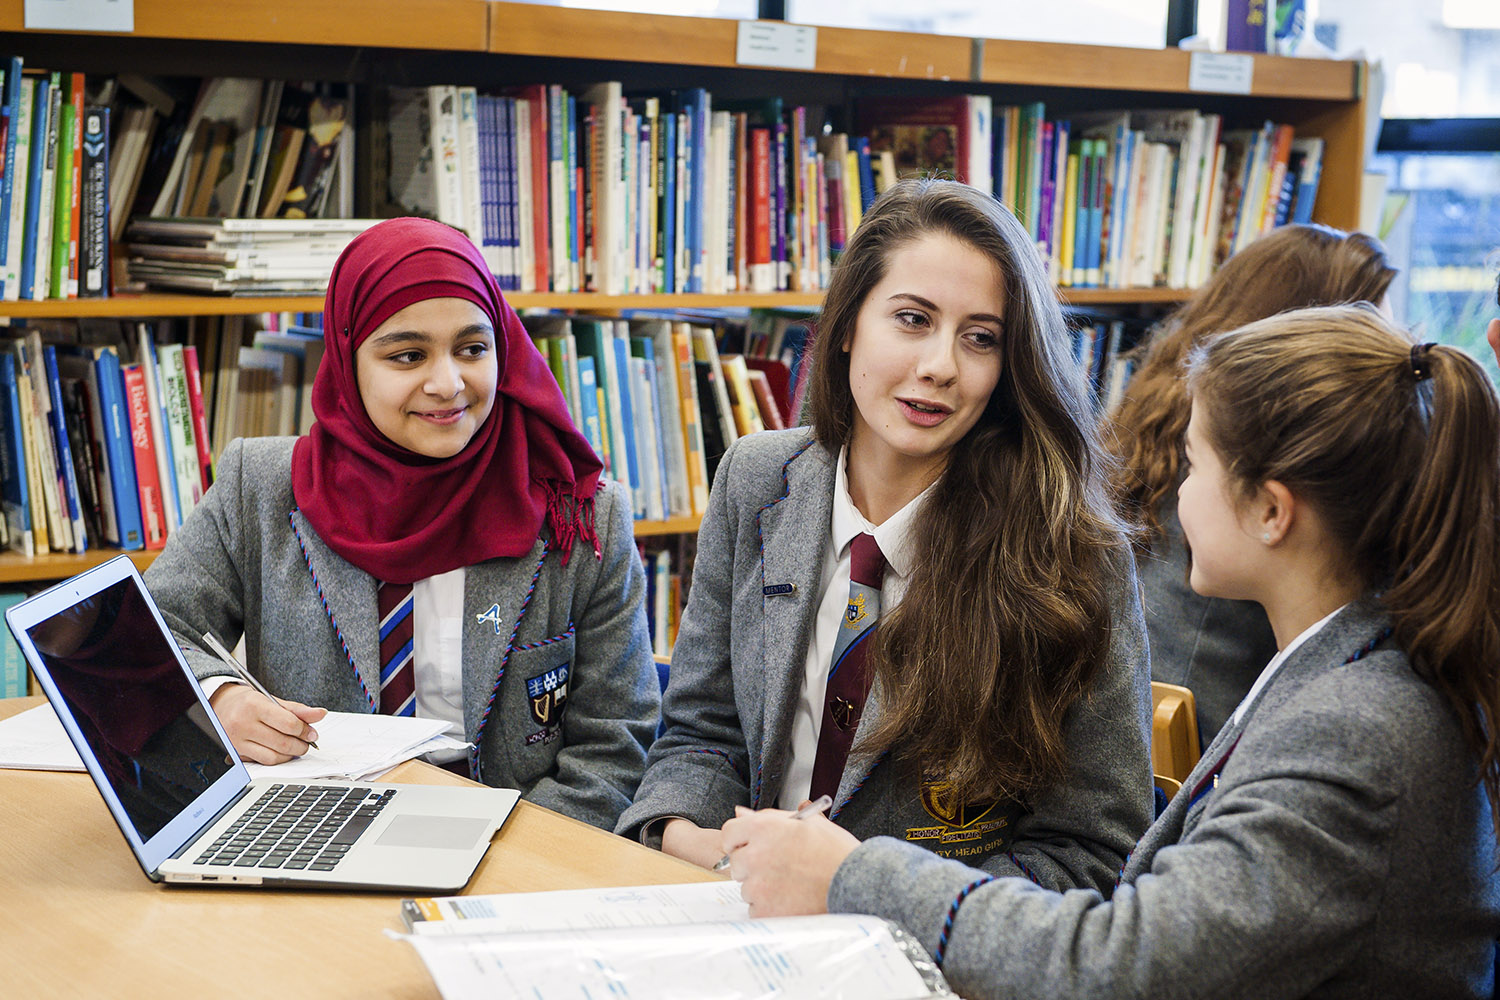 Girls working together in library with notebook computer